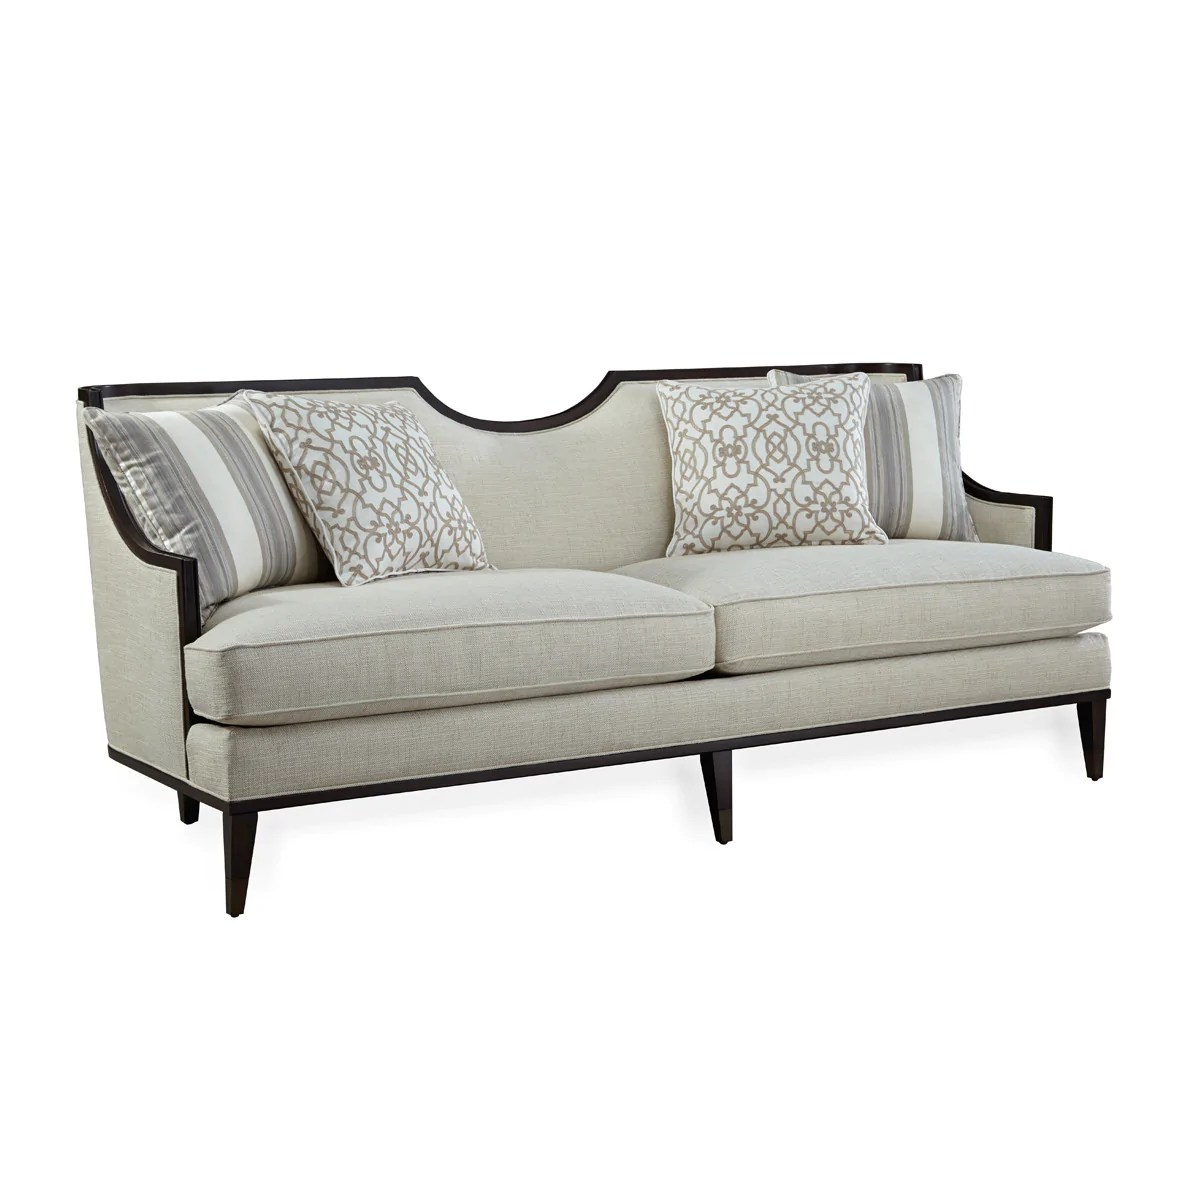 barletta sofa baja convert a couch and bed assembly instructions